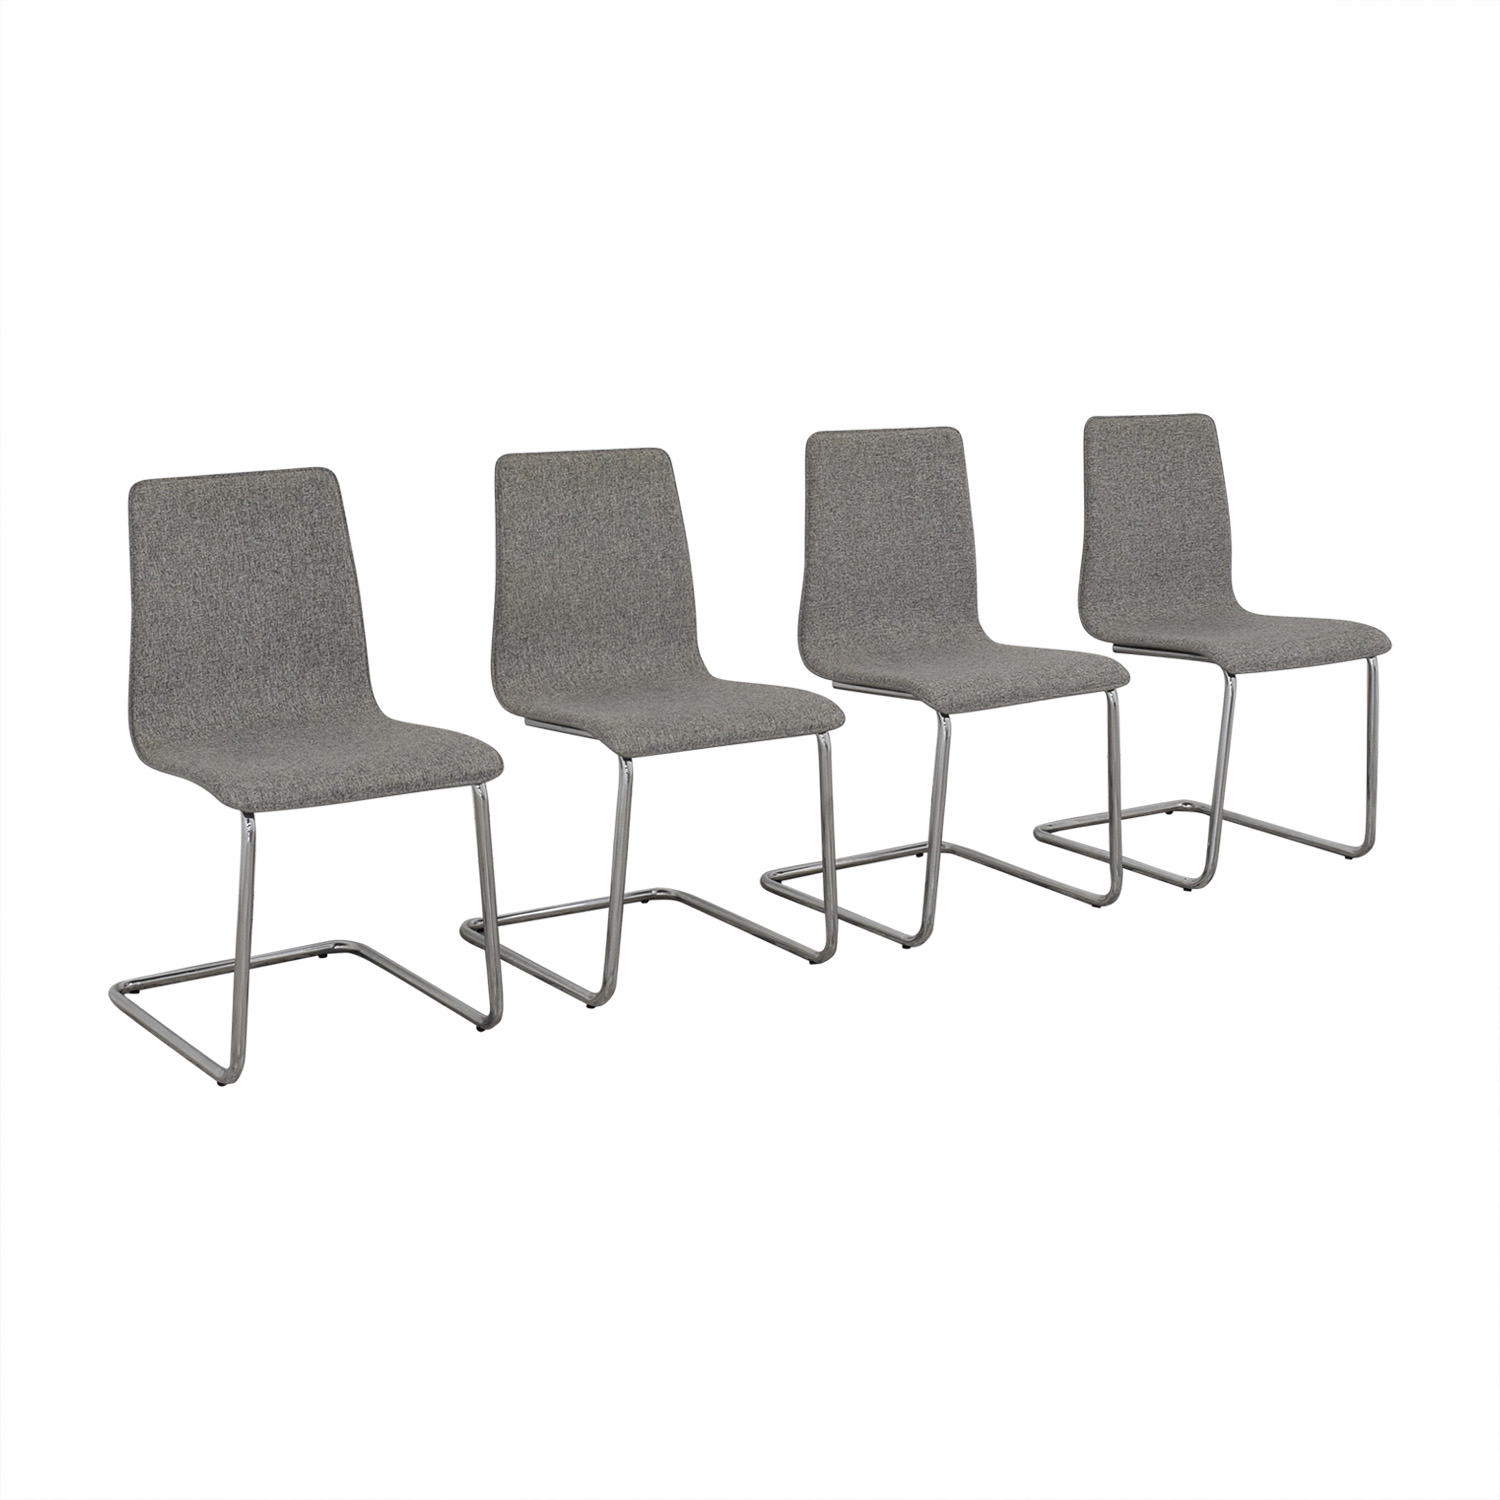 buy CB2 Pony Tweed Chairs CB2 Dining Chairs